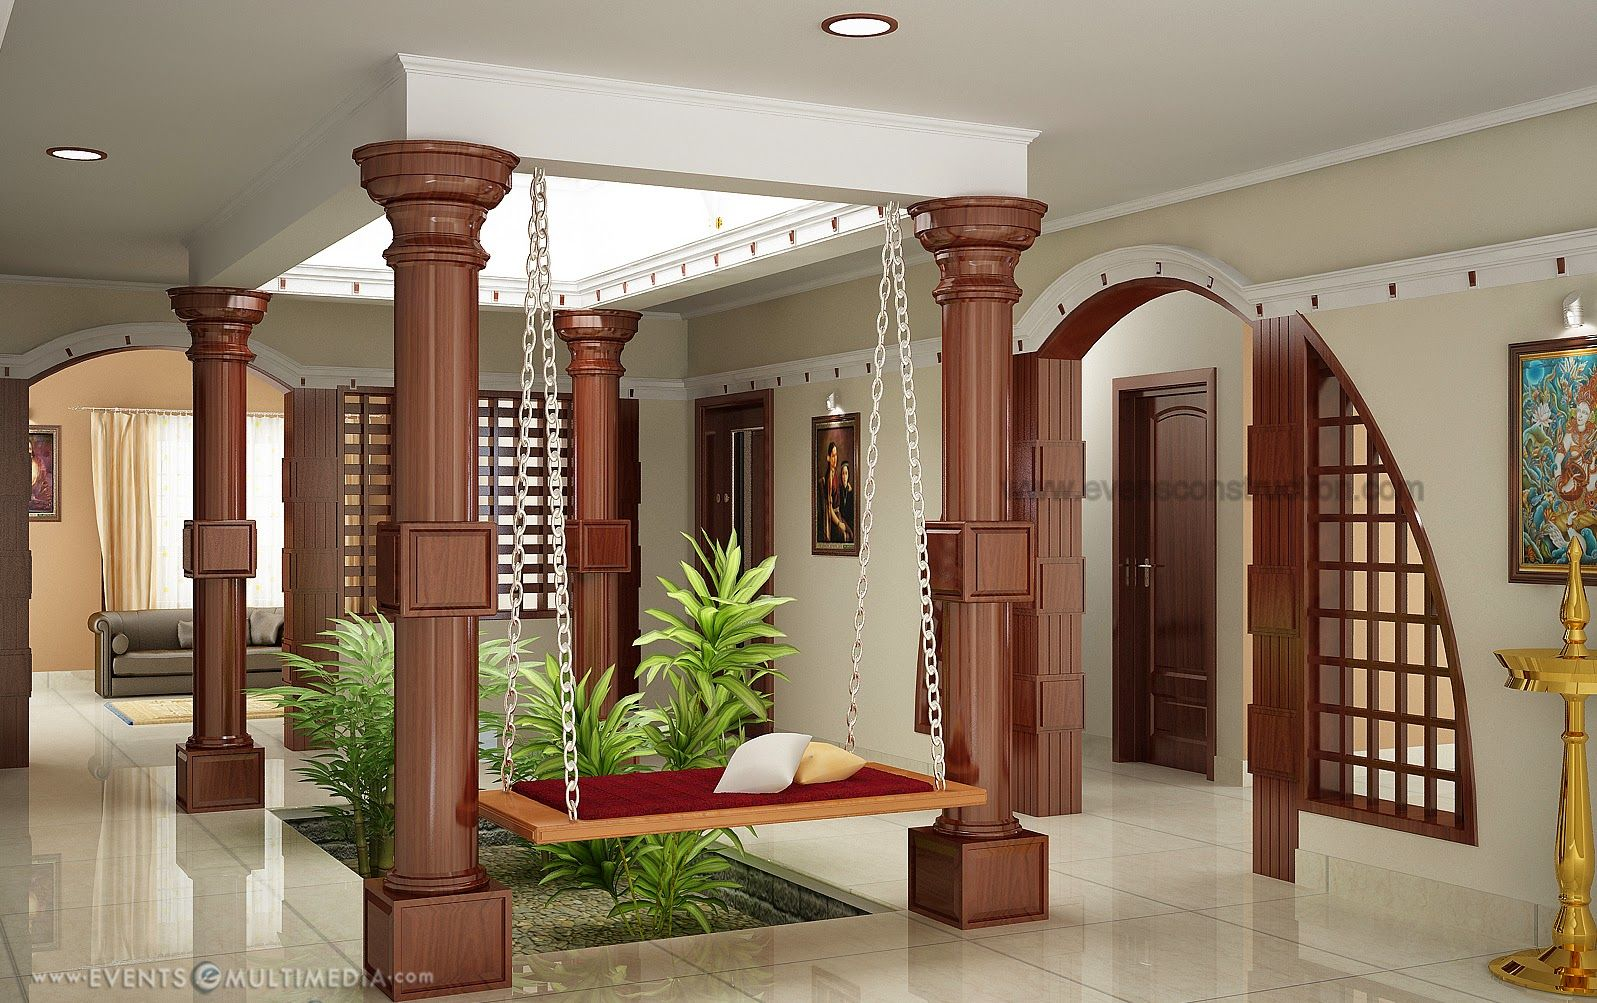 Courtyard For Kerala House With Images Indian Home Design